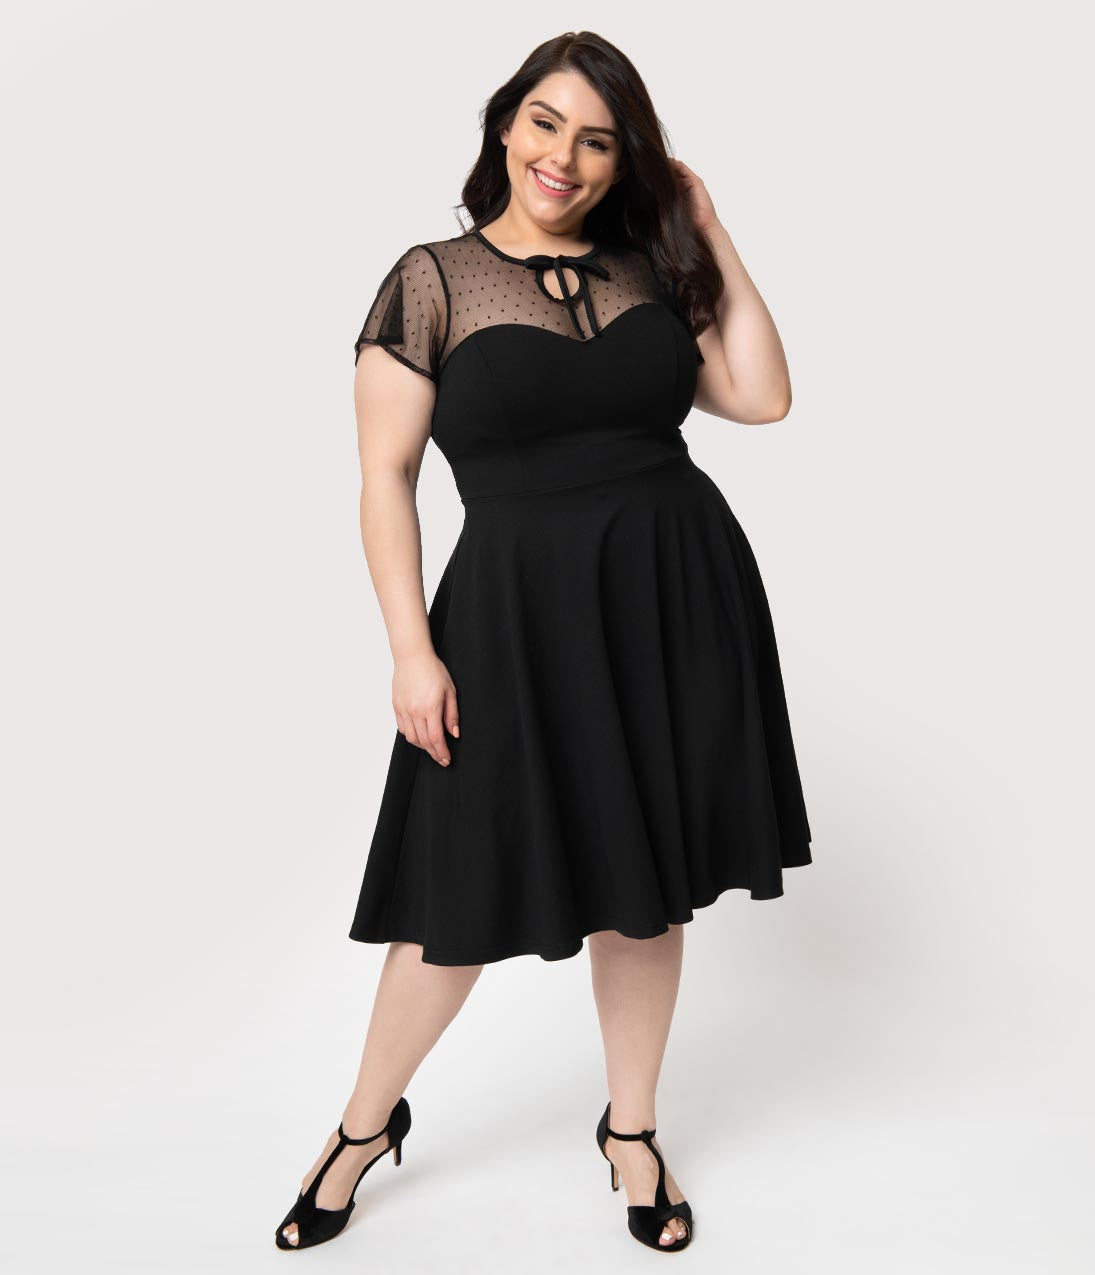 500 Vintage Style Dresses for Sale | Vintage Inspired Dresses Unique Vintage Plus Size 1940S Style Black Swiss Dotted Mesh Heather Midi Dress $98.00 AT vintagedancer.com